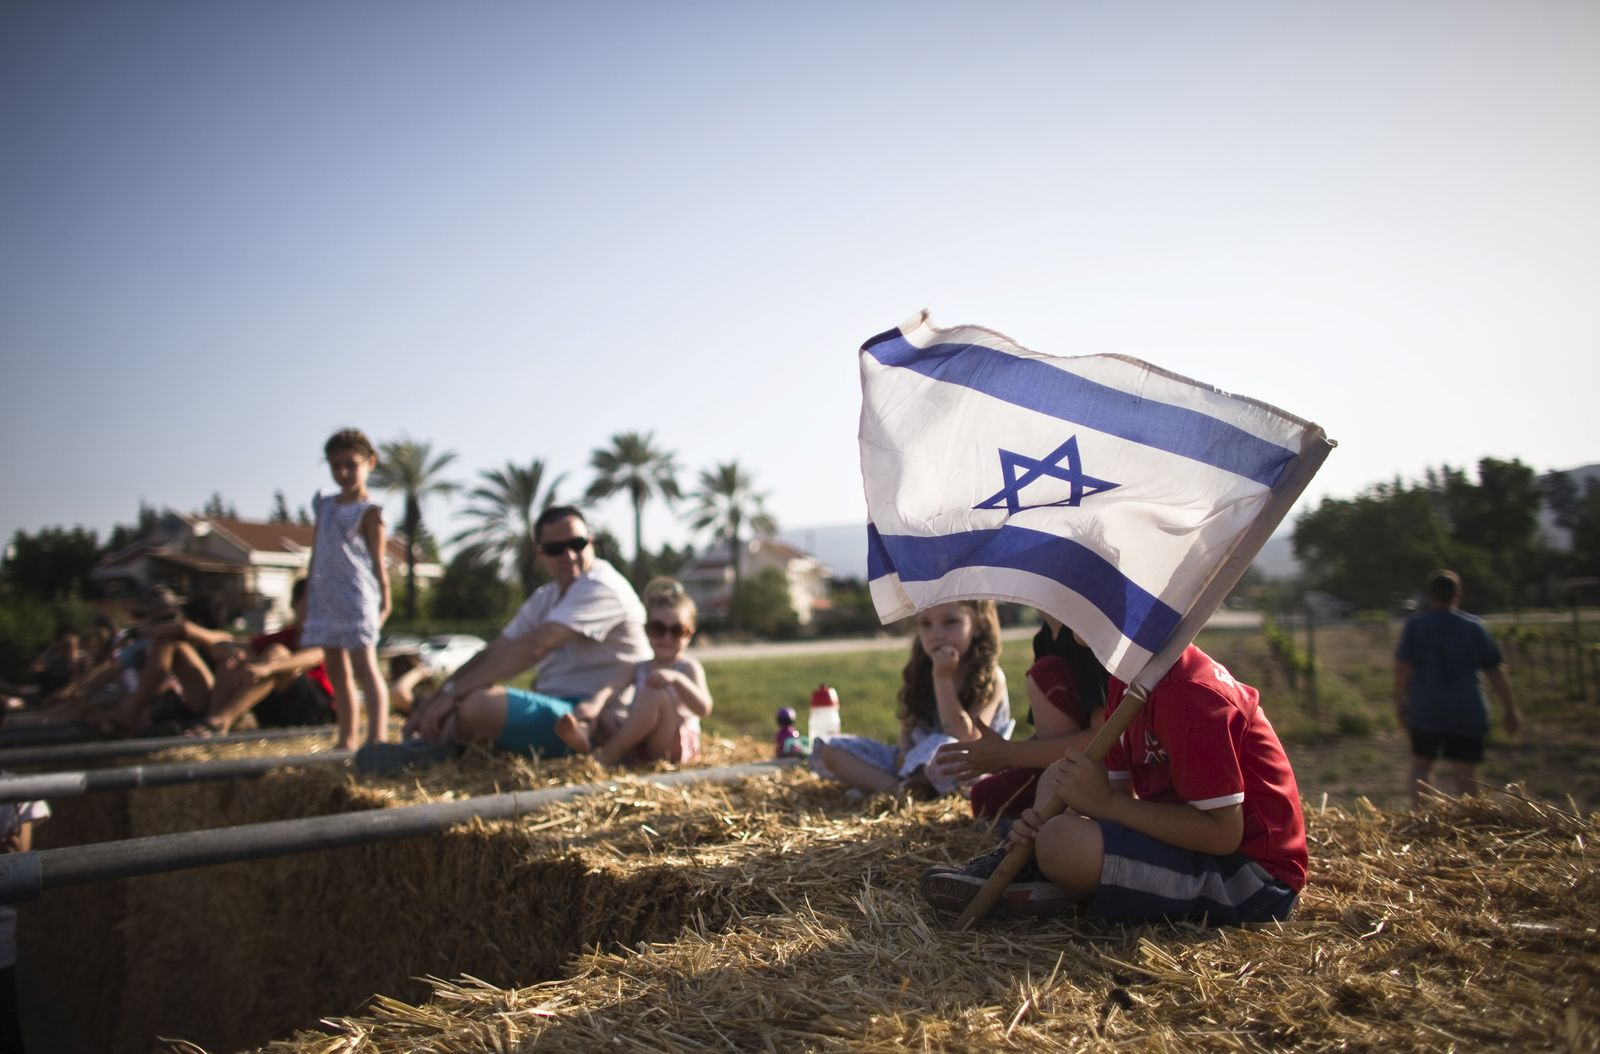 Children sit on bales of hay at the annual harvest festival in Kibbutz Degania Alef, northern Israel